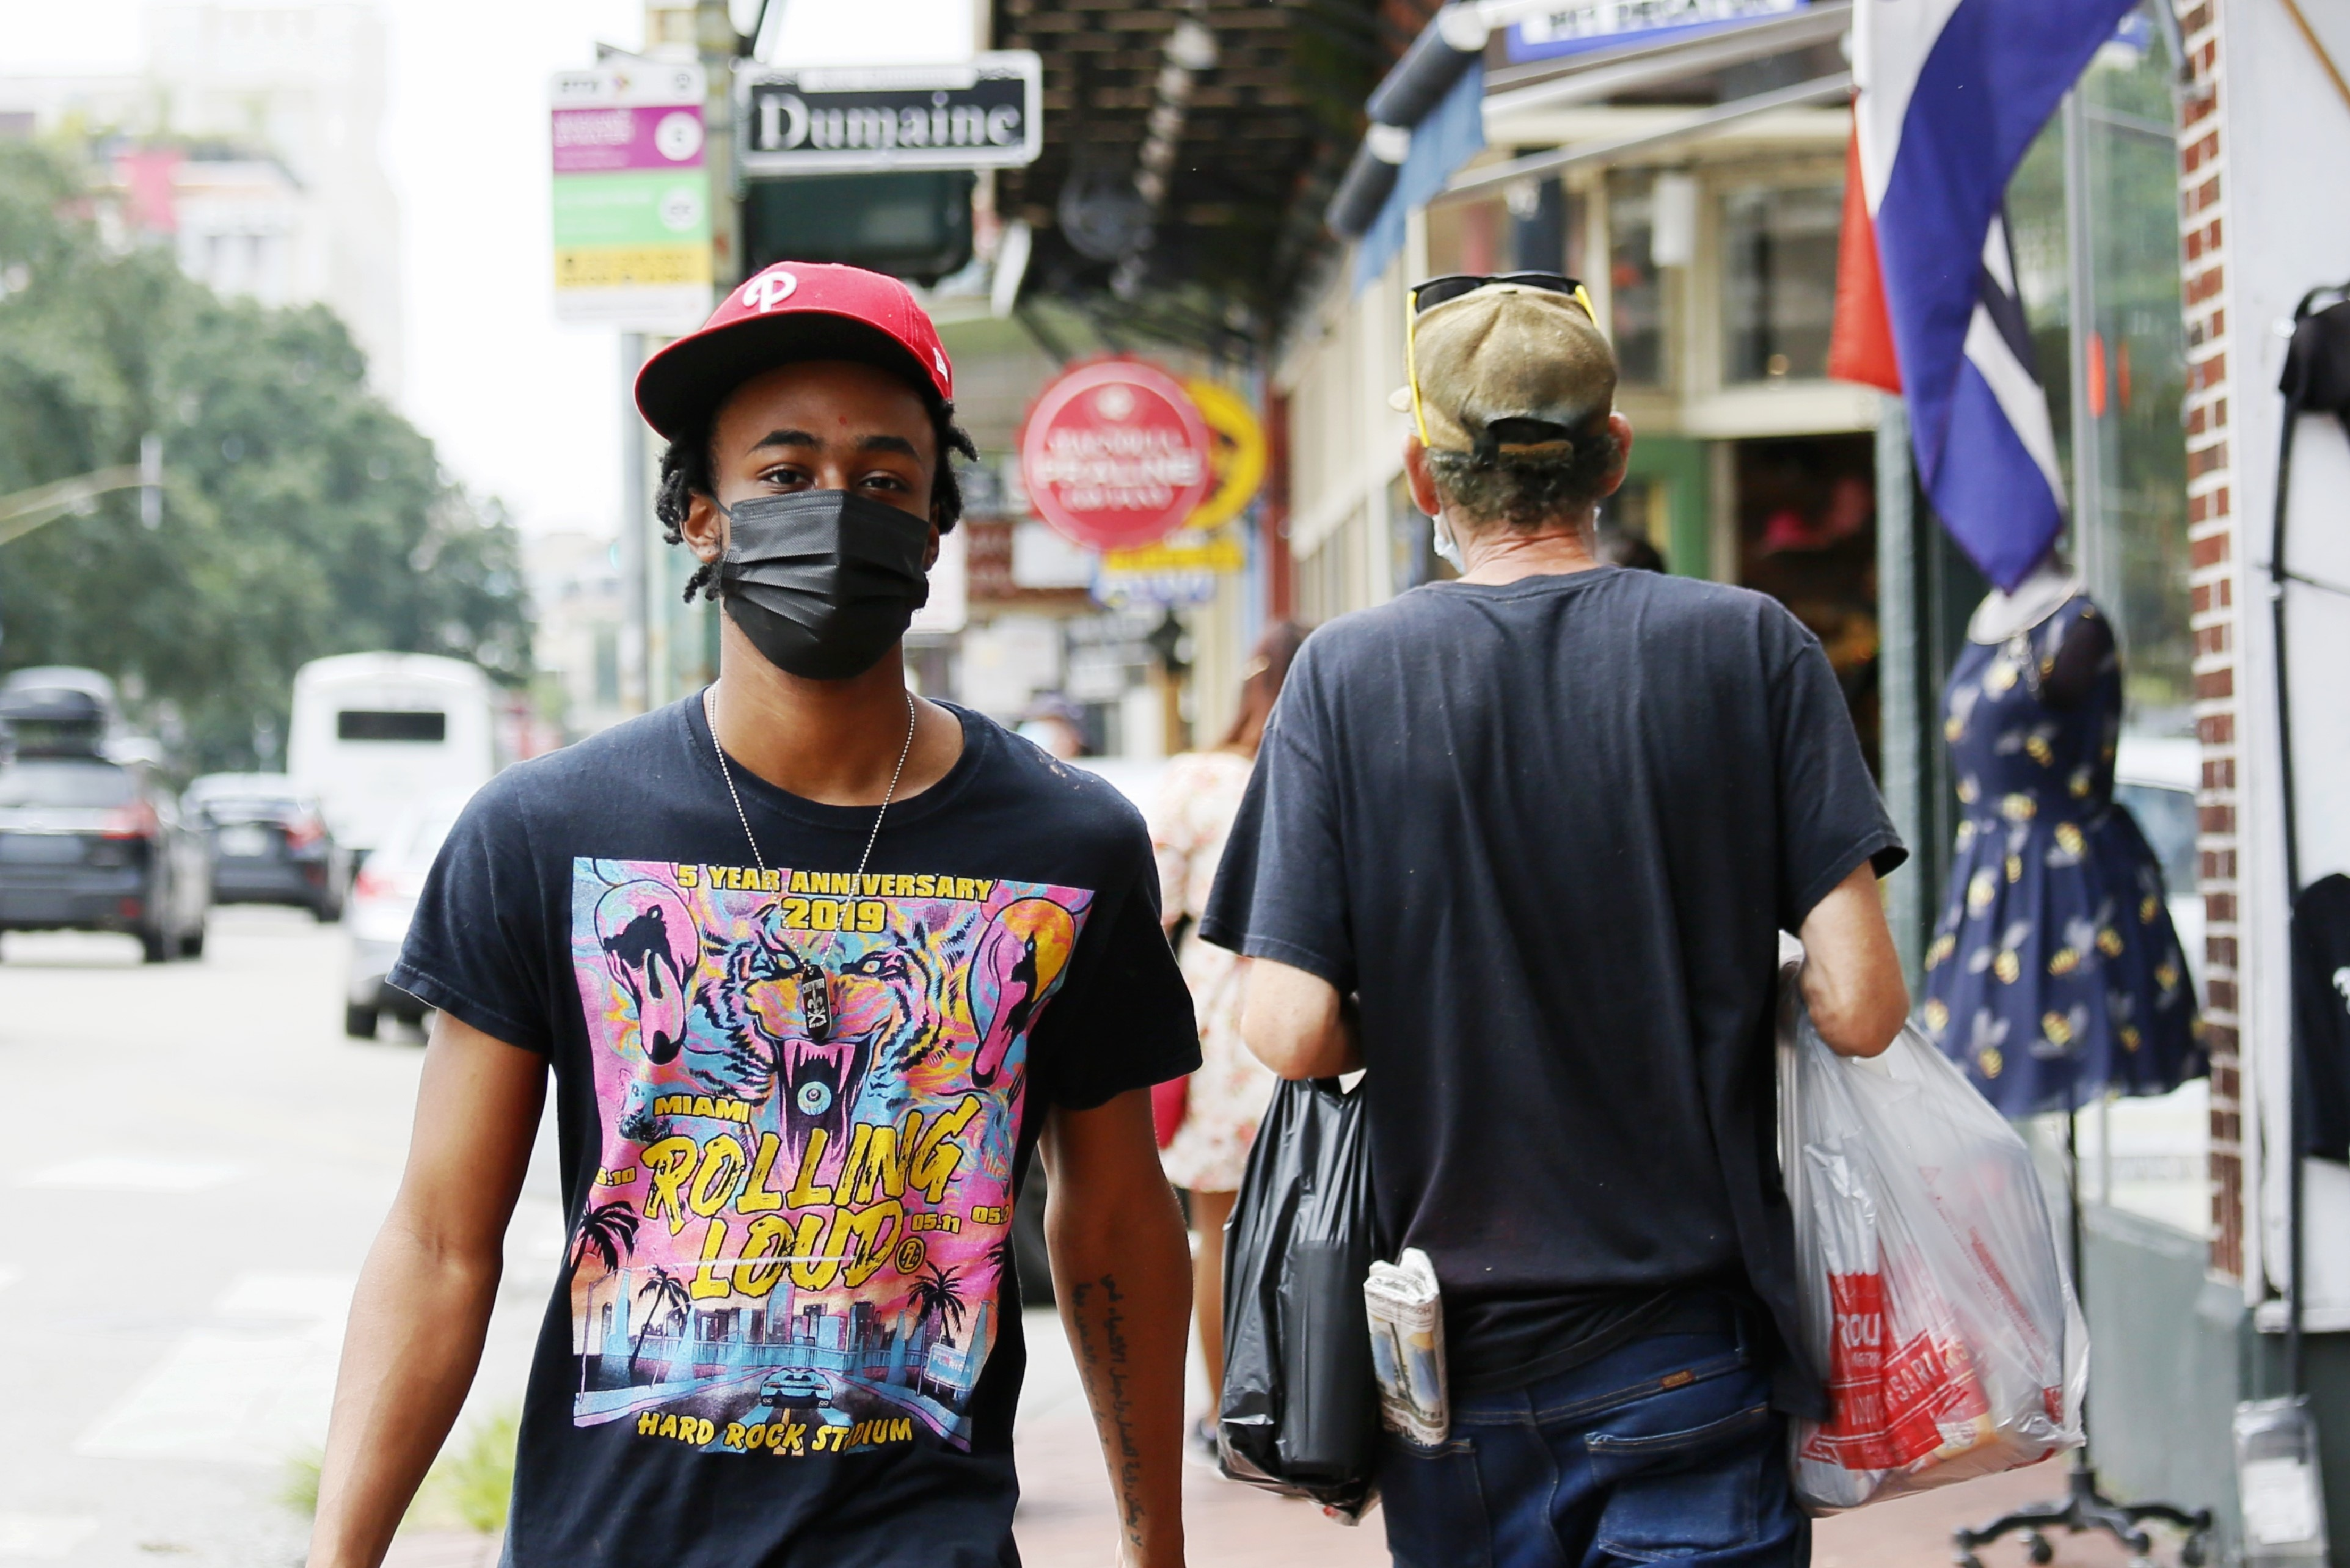 A young black man wearing a black face mask and a red hat walks along a busy New Orleans street, with retail displays on the sidewalk and passersby behind him.